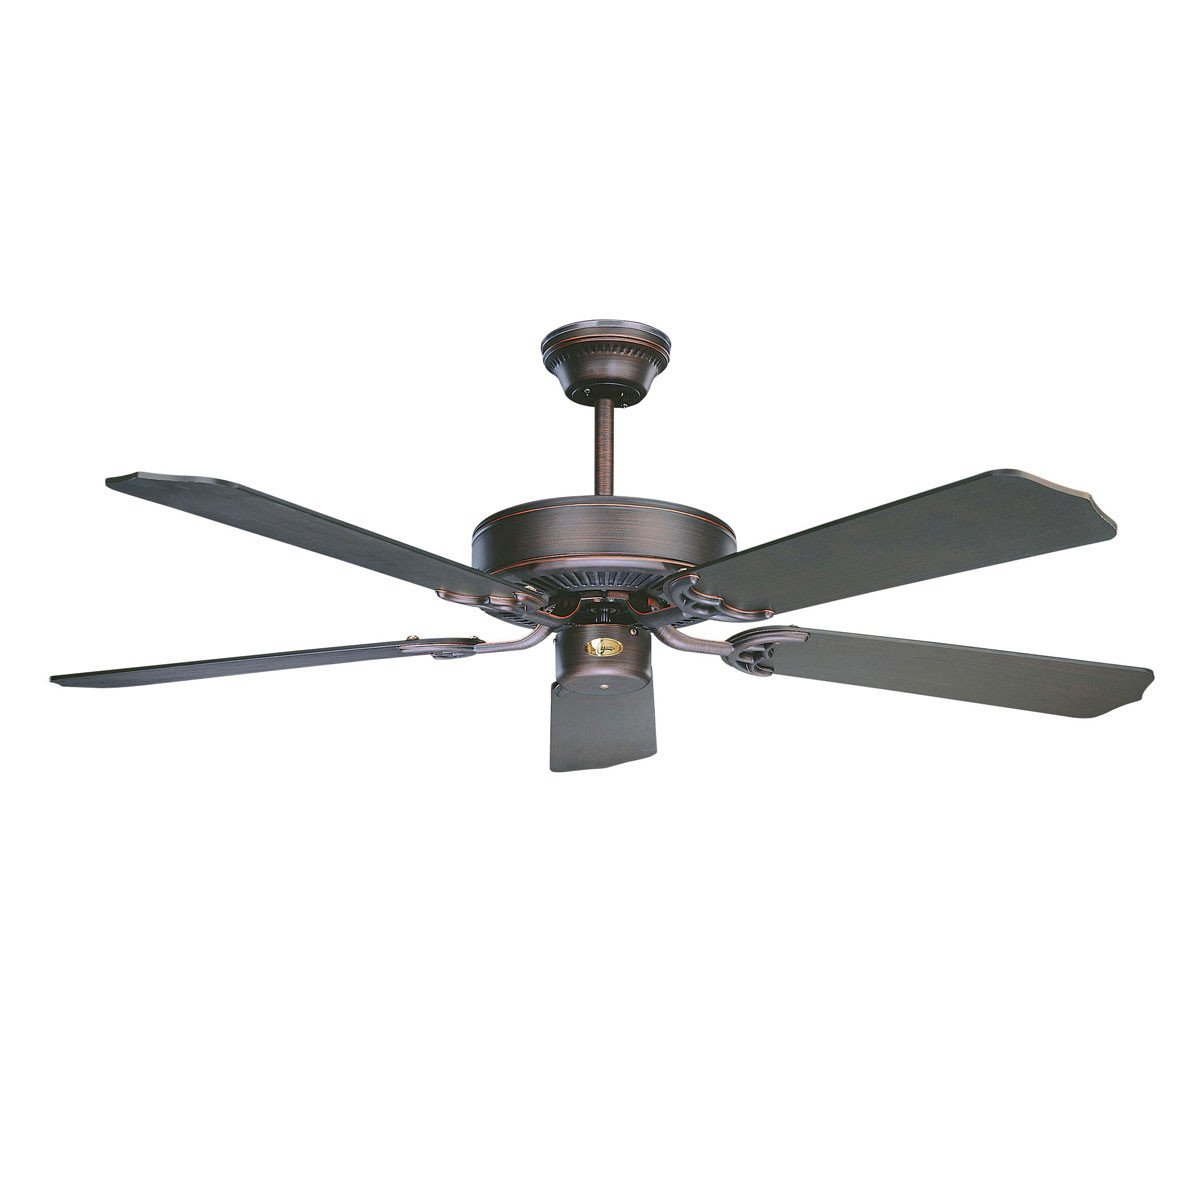 "Concord Fans 42"" California Energy Saver Oil Rubbed Bronze Small Ceiling Fan"